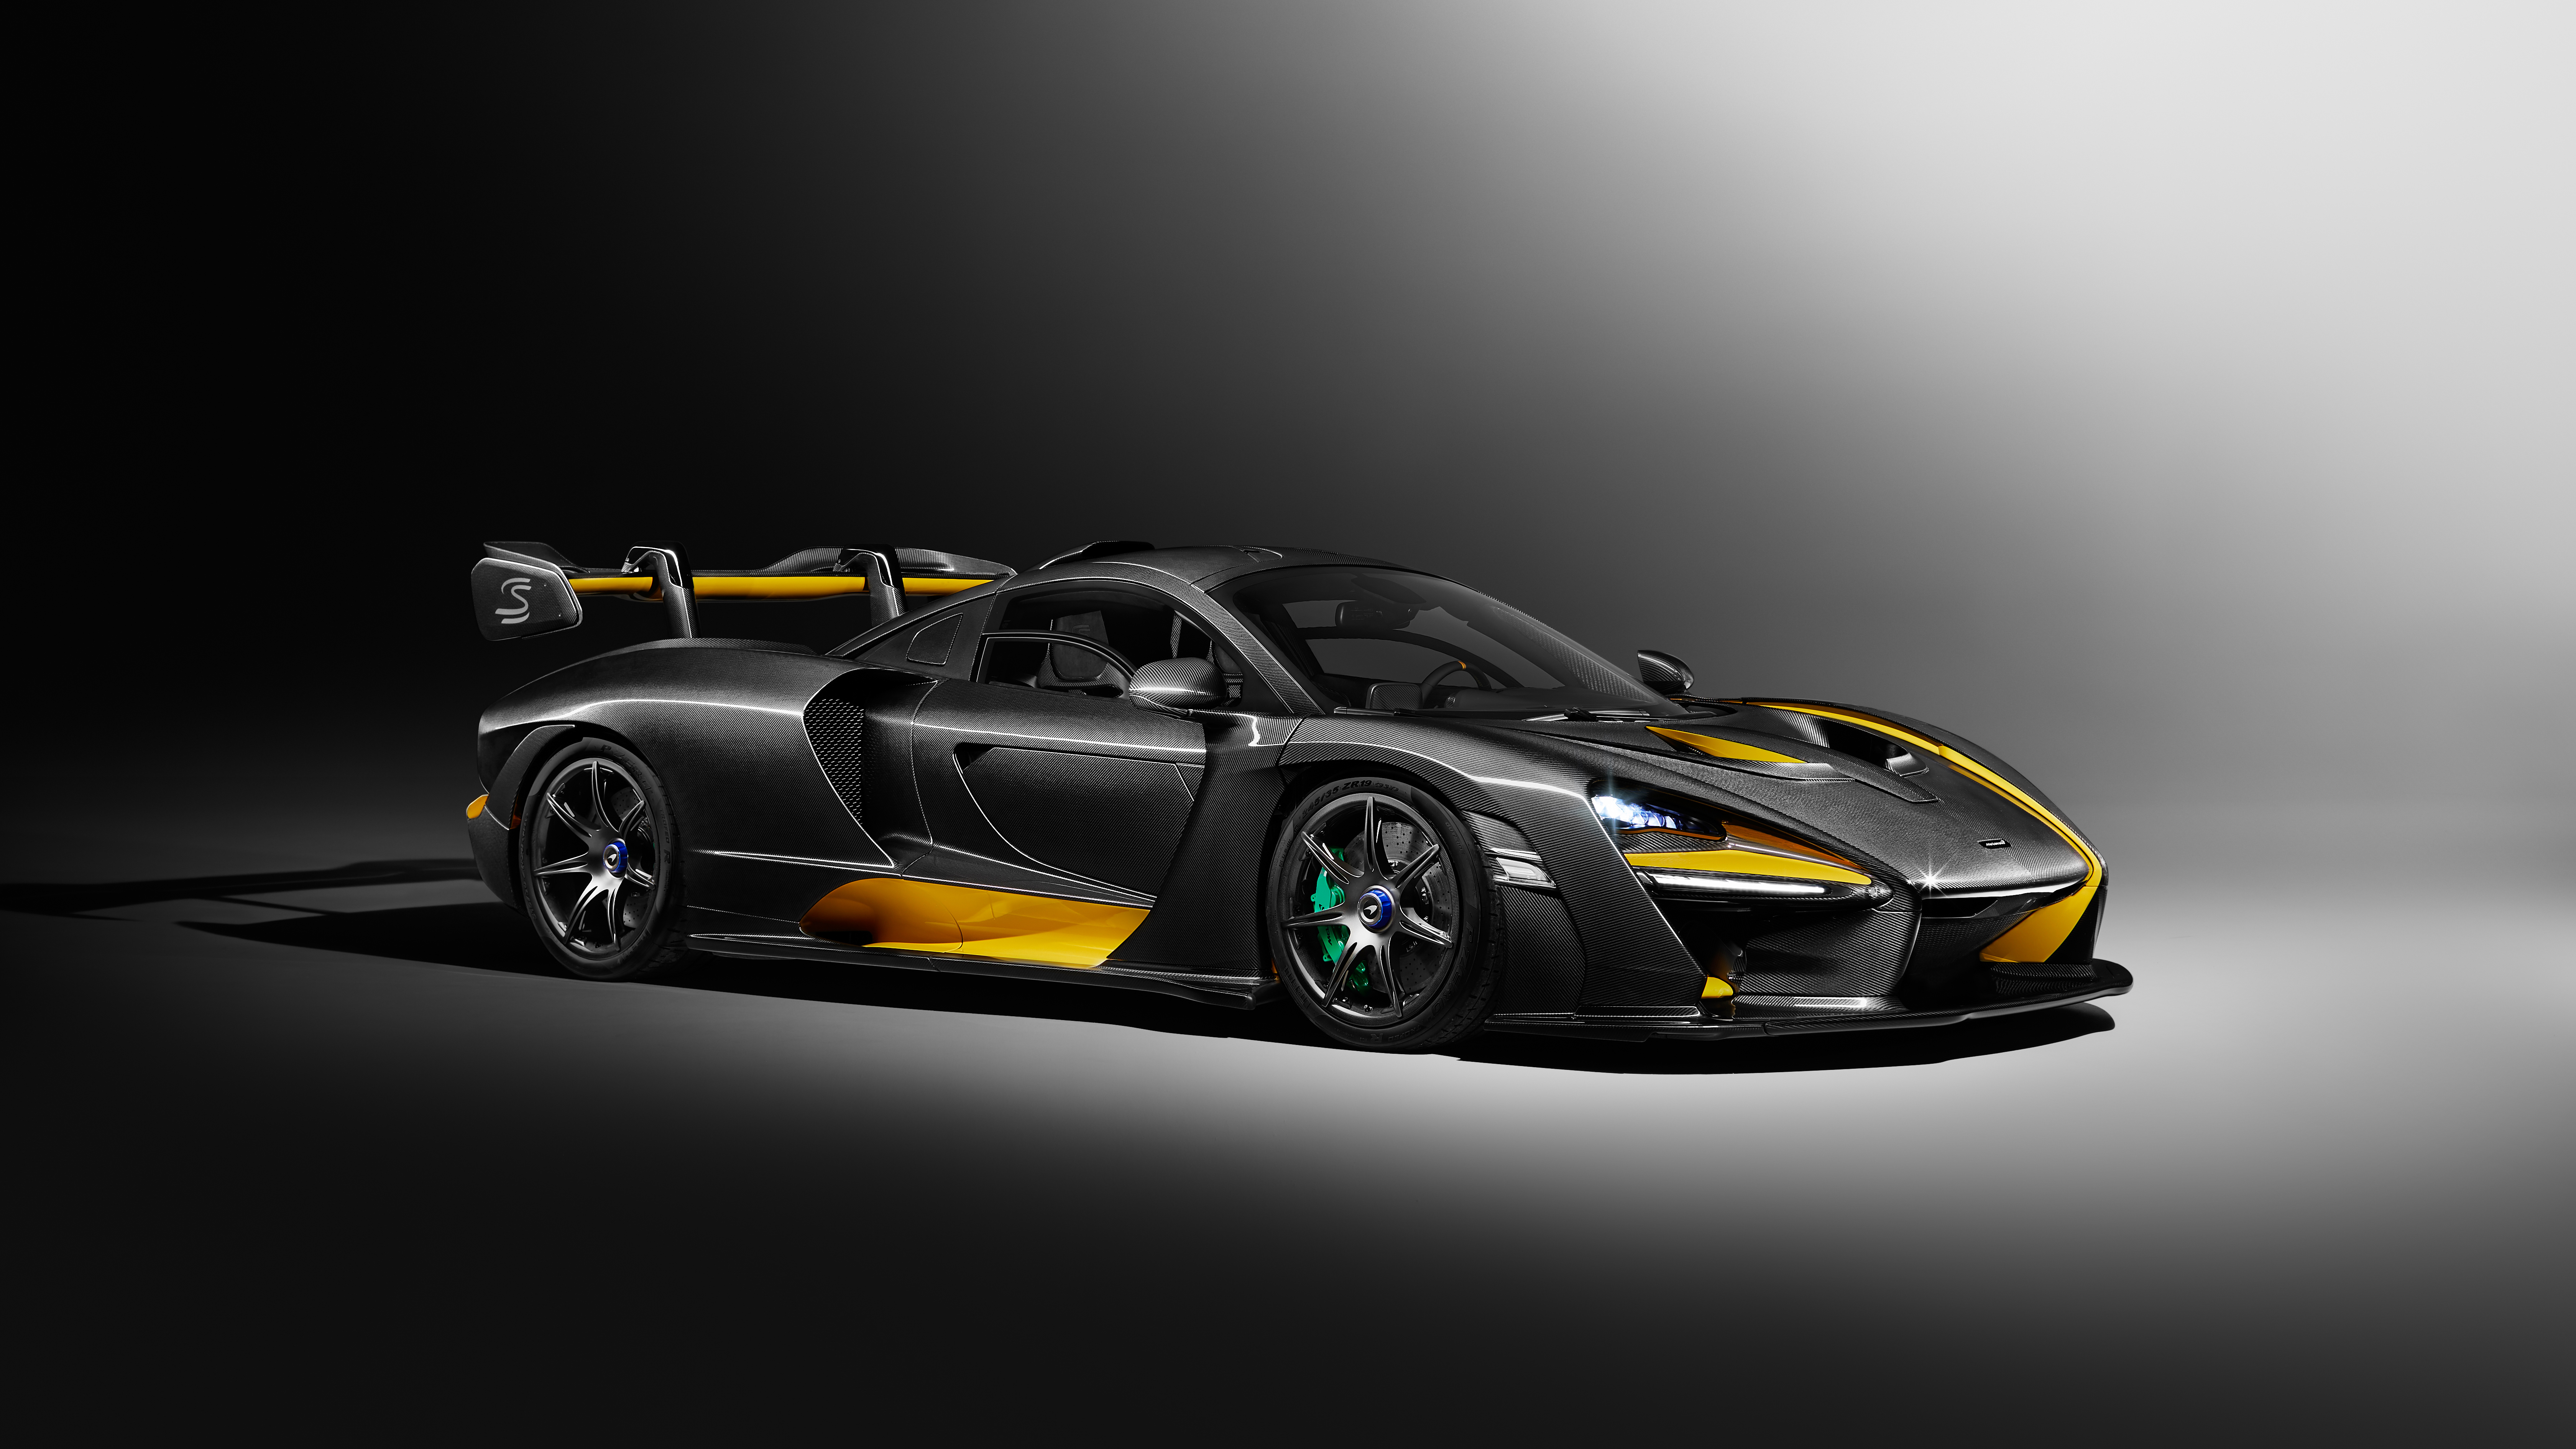 Maserati Car Hd Wallpaper Download 2019 Mclaren Senna Carbon Theme By Mso 5k Wallpaper Hd